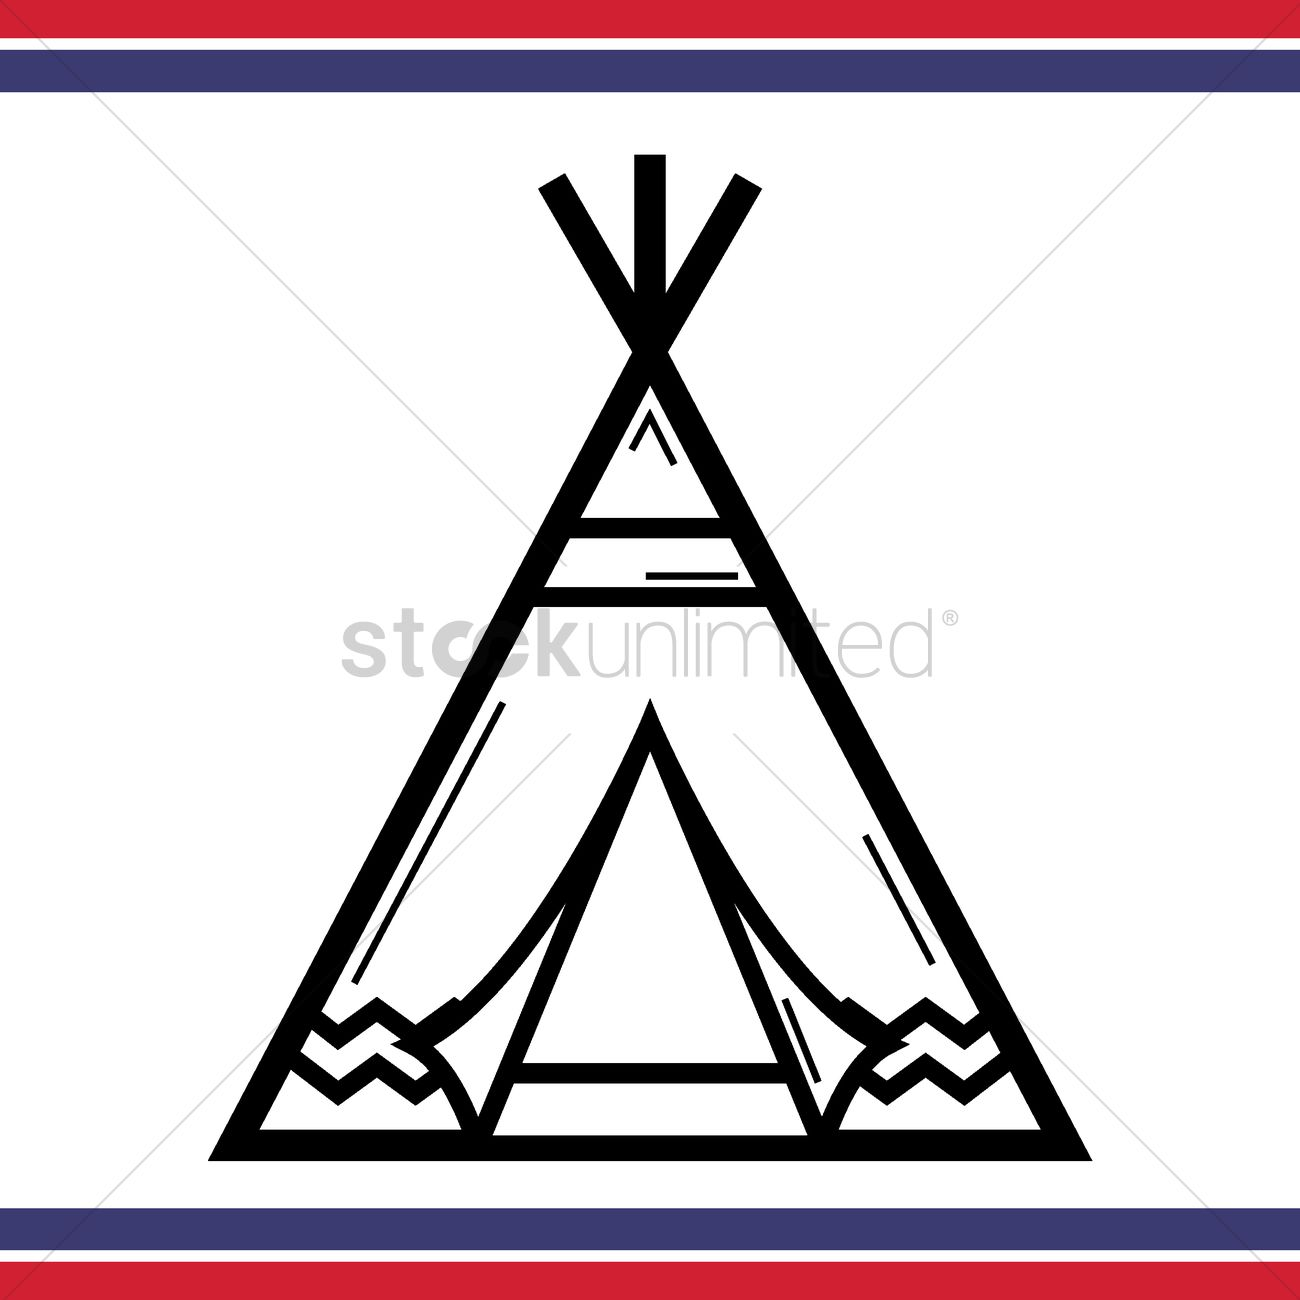 native american tepee tent vector image 1557592 stockunlimited native american clipart free free native american clipart images